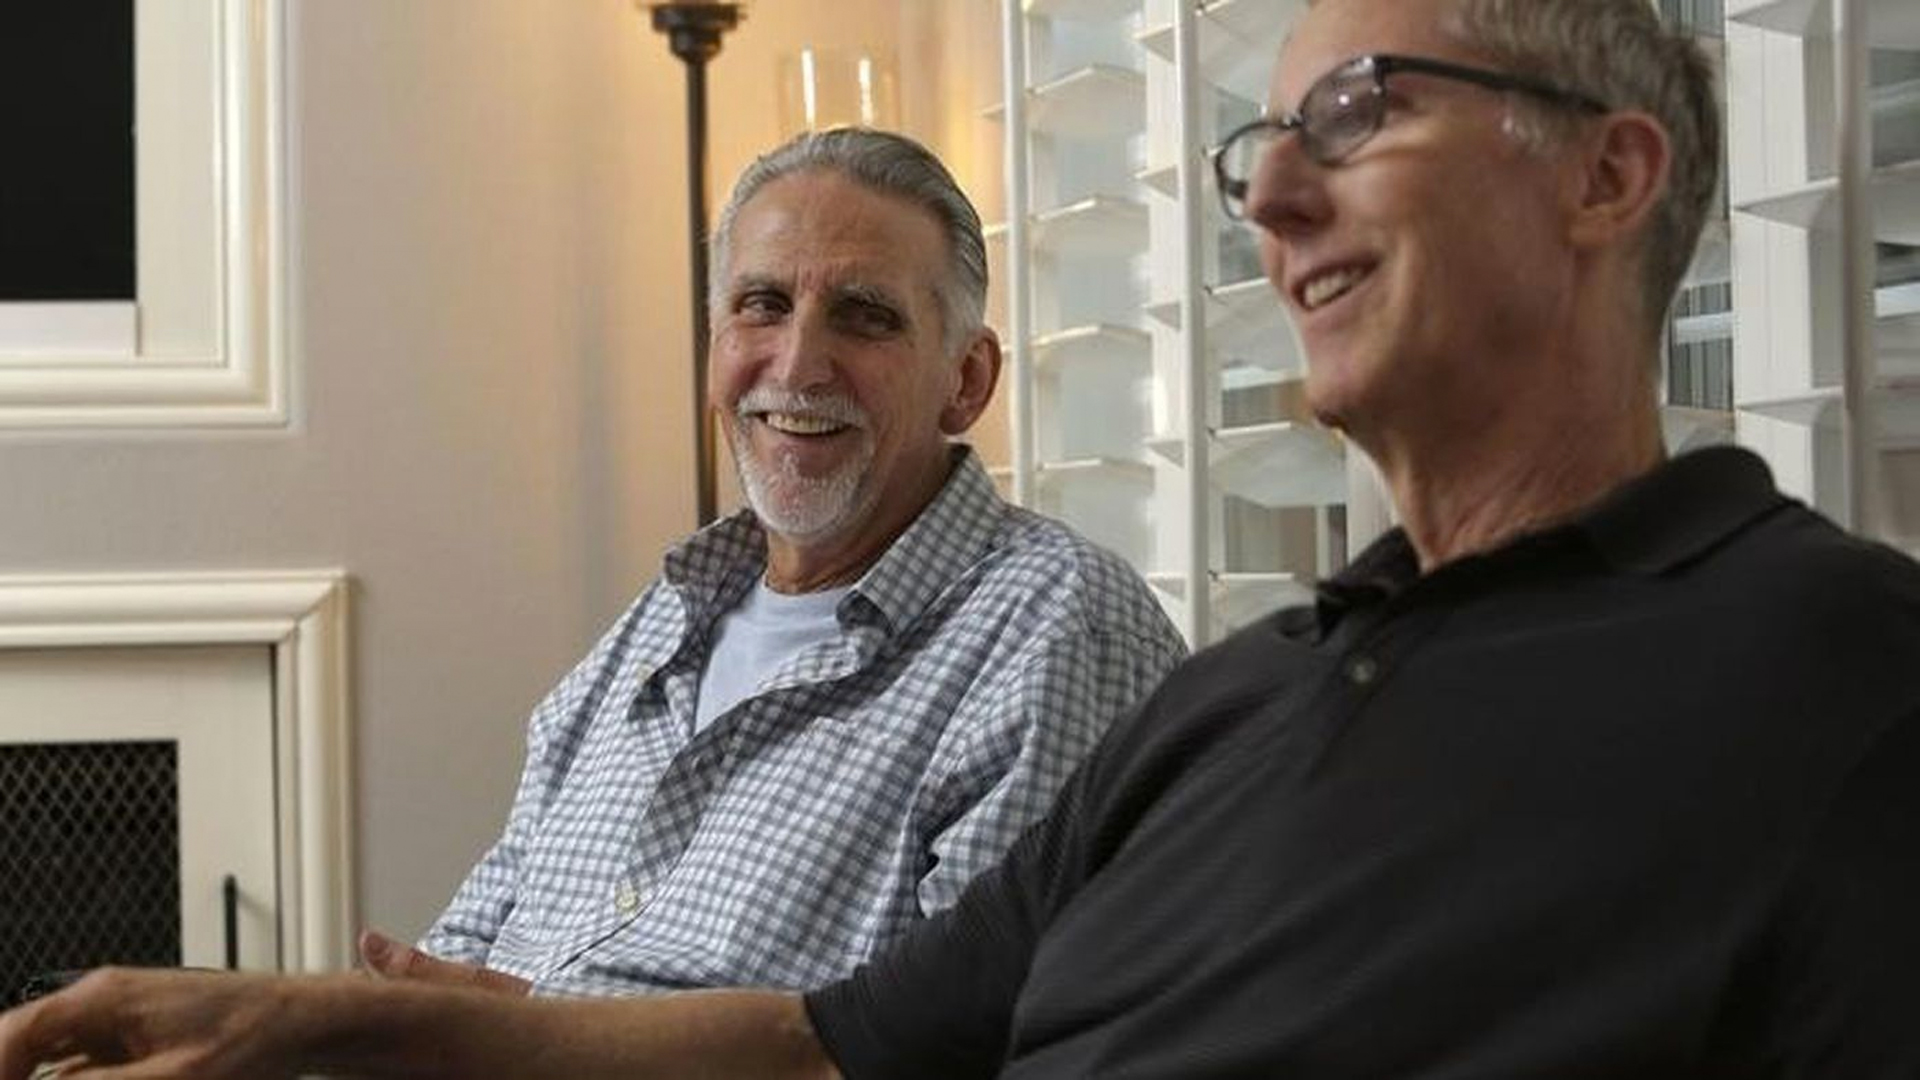 Craig Coley, left, spent 39 years behind bars. He calls retired detective Michael Bender, who helped free him, his savior. (Credit: Bill Wechter / San Diego Union-Tribune / CNG via Los Angeles Times)